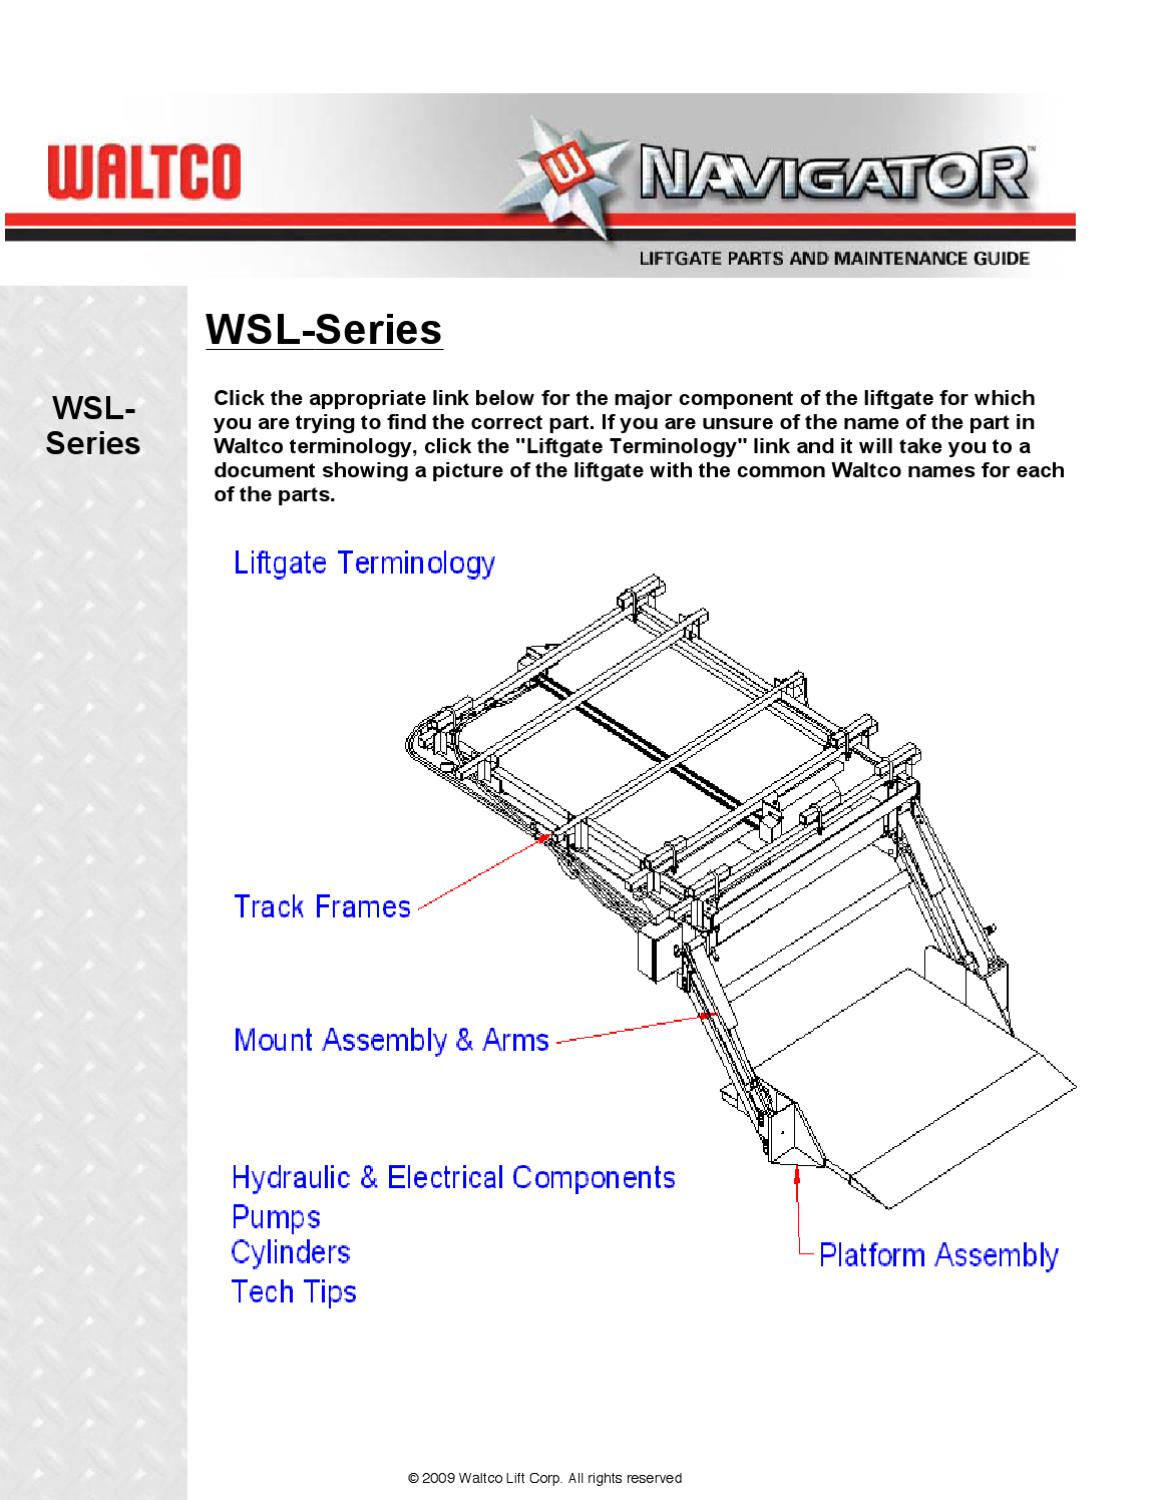 Beautiful Tommy Lift Wiring Diagrams Frieze - Electrical and Wiring on kenworth air brake diagram, 2008 toyota sienna parts diagram, anthony liftgate wiring diagram, tommy liftgate wiring diagram, waltco lift gate solenoid diagram, maxon liftgate wiring diagram, maxon liftgate parts diagram, interlift liftgate wiring diagram, thieman liftgate wiring diagram, leyman liftgate wiring diagram,